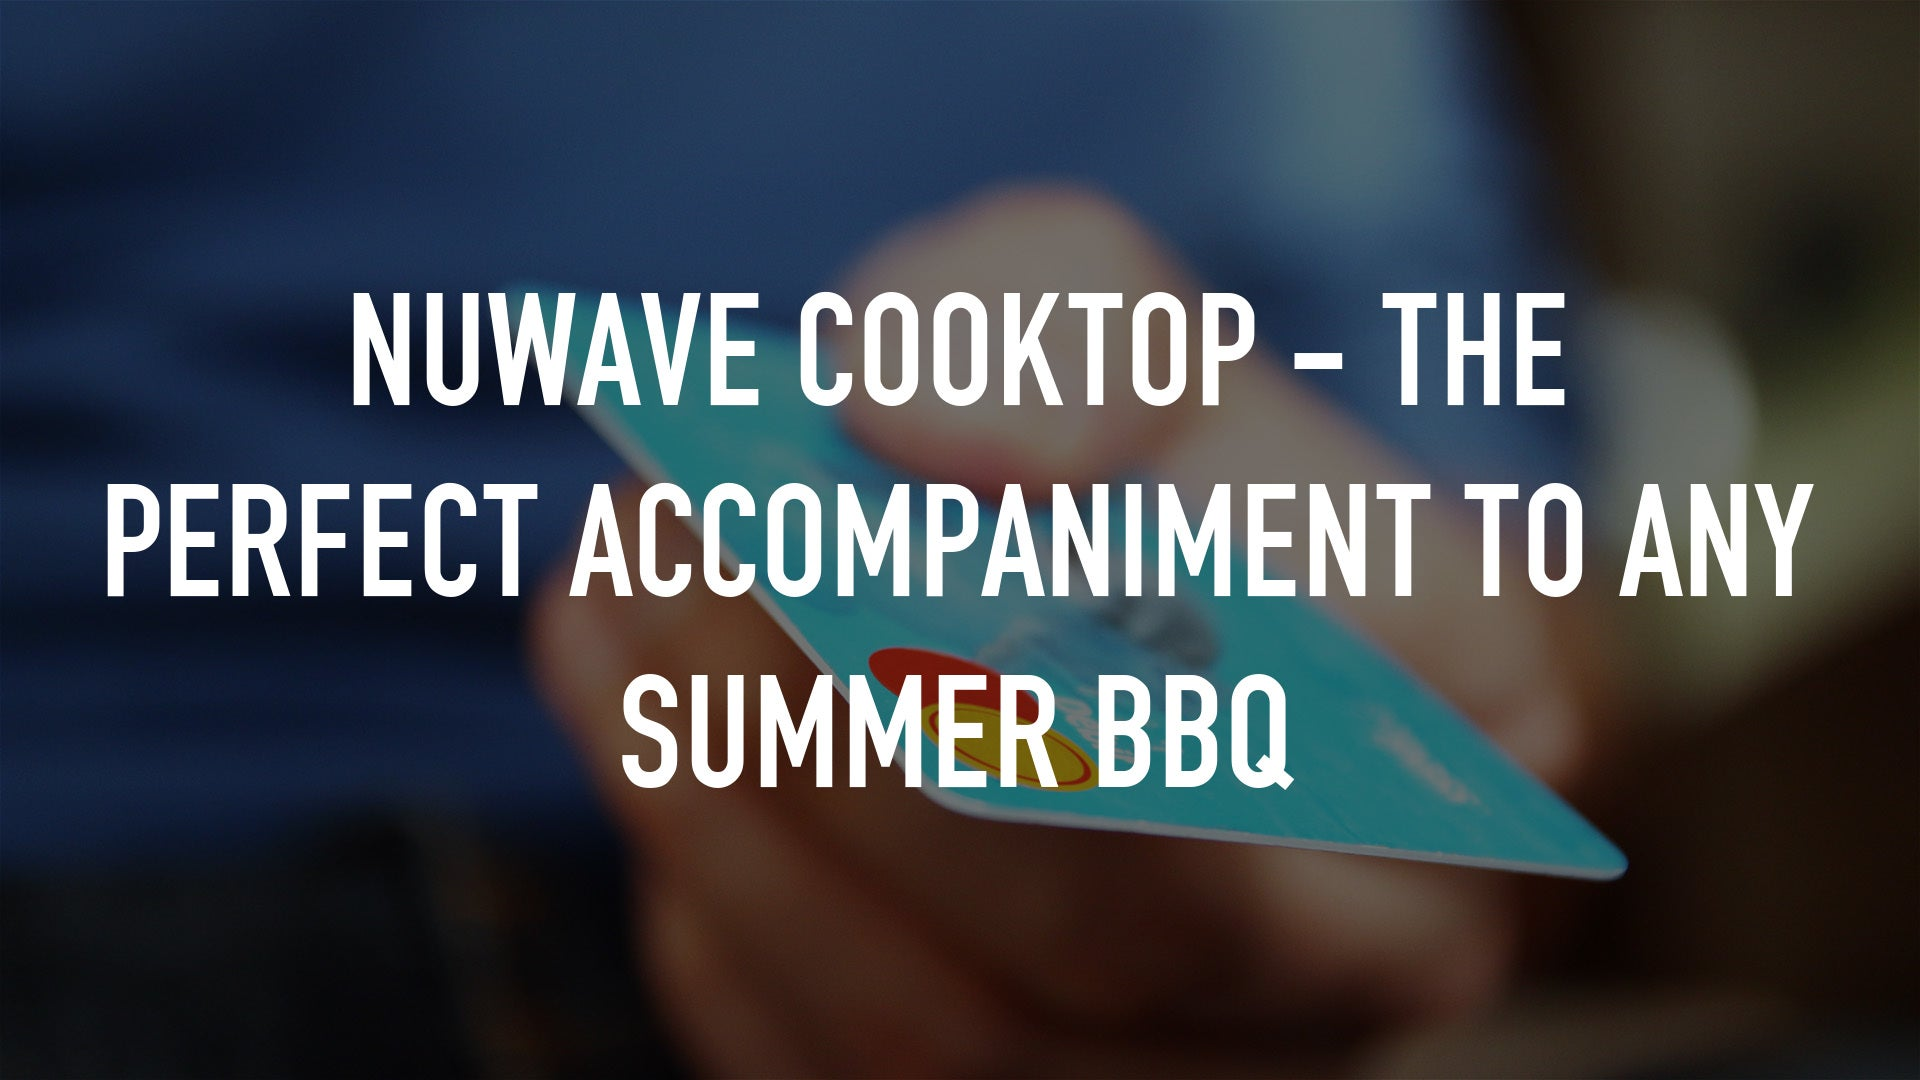 Nuwave Cooktop - The Perfect Accompaniment To Any Summer BBQ